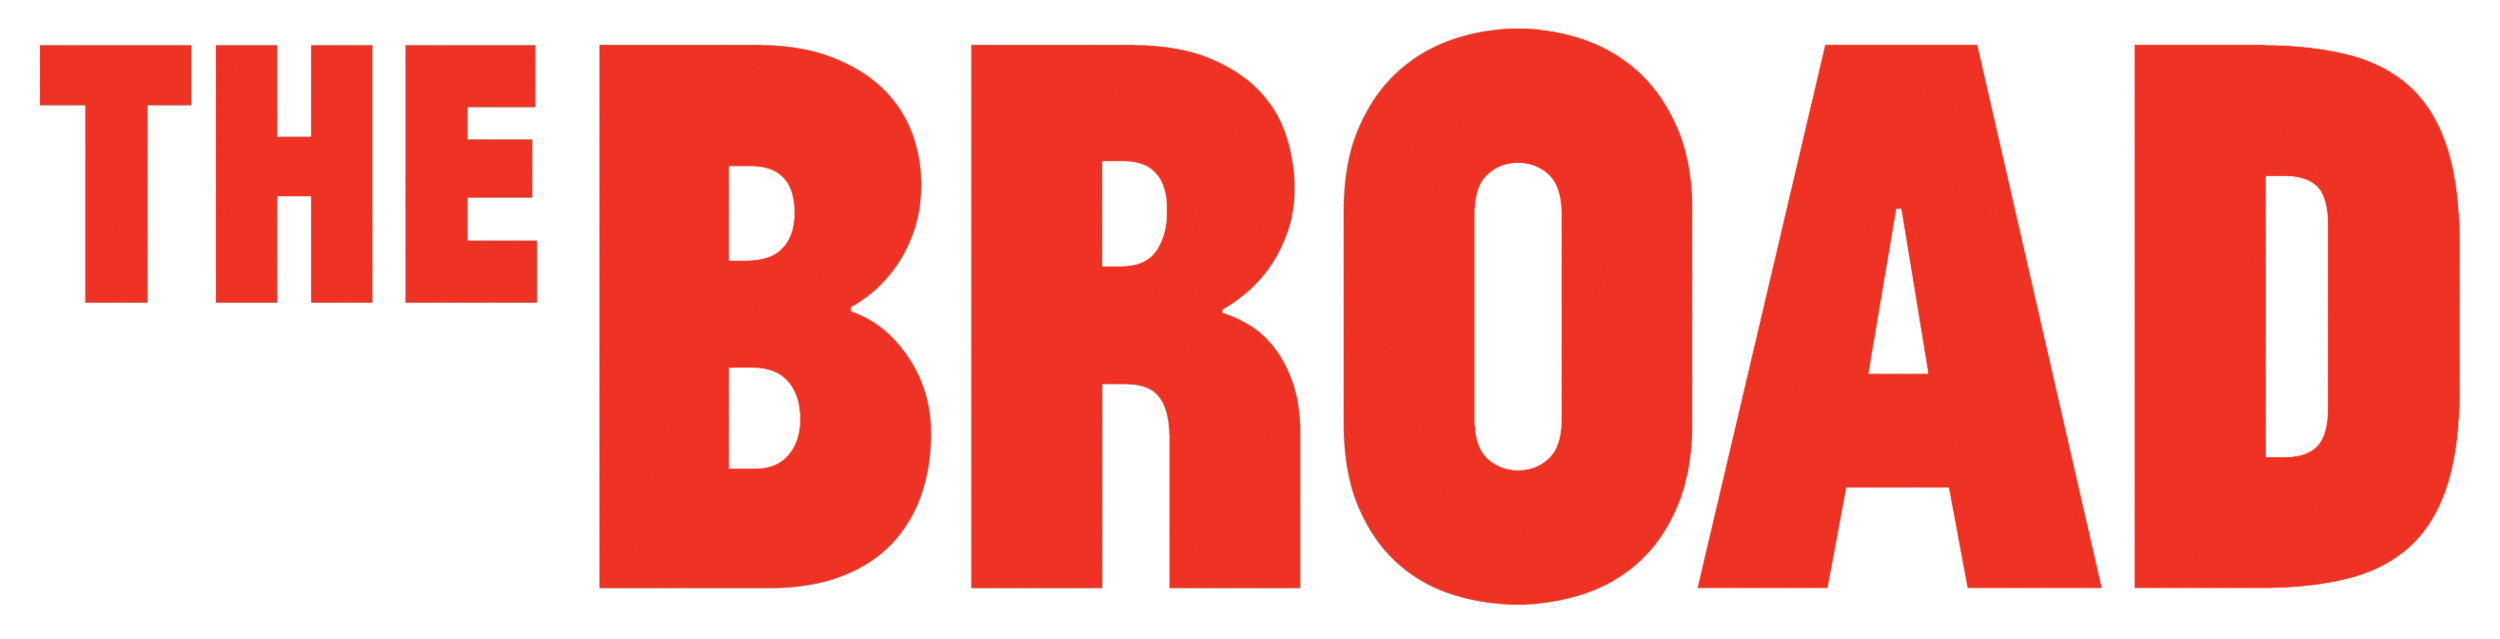 Image result for the broad logo